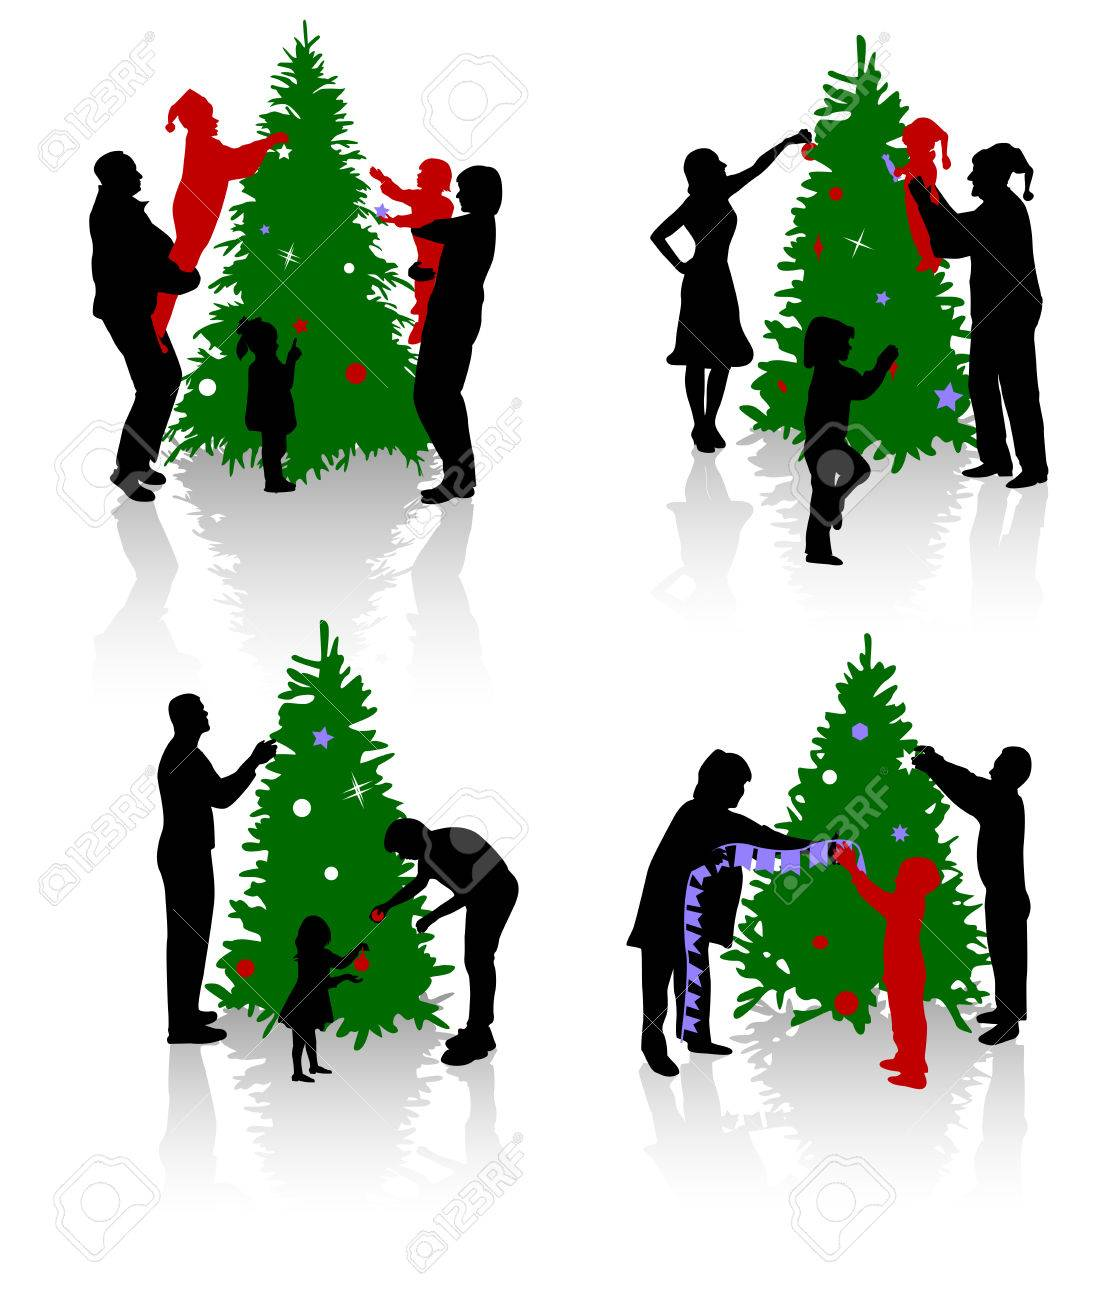 People Decorating For Christmas silhouettes of the people decorating a christmas tree. royalty